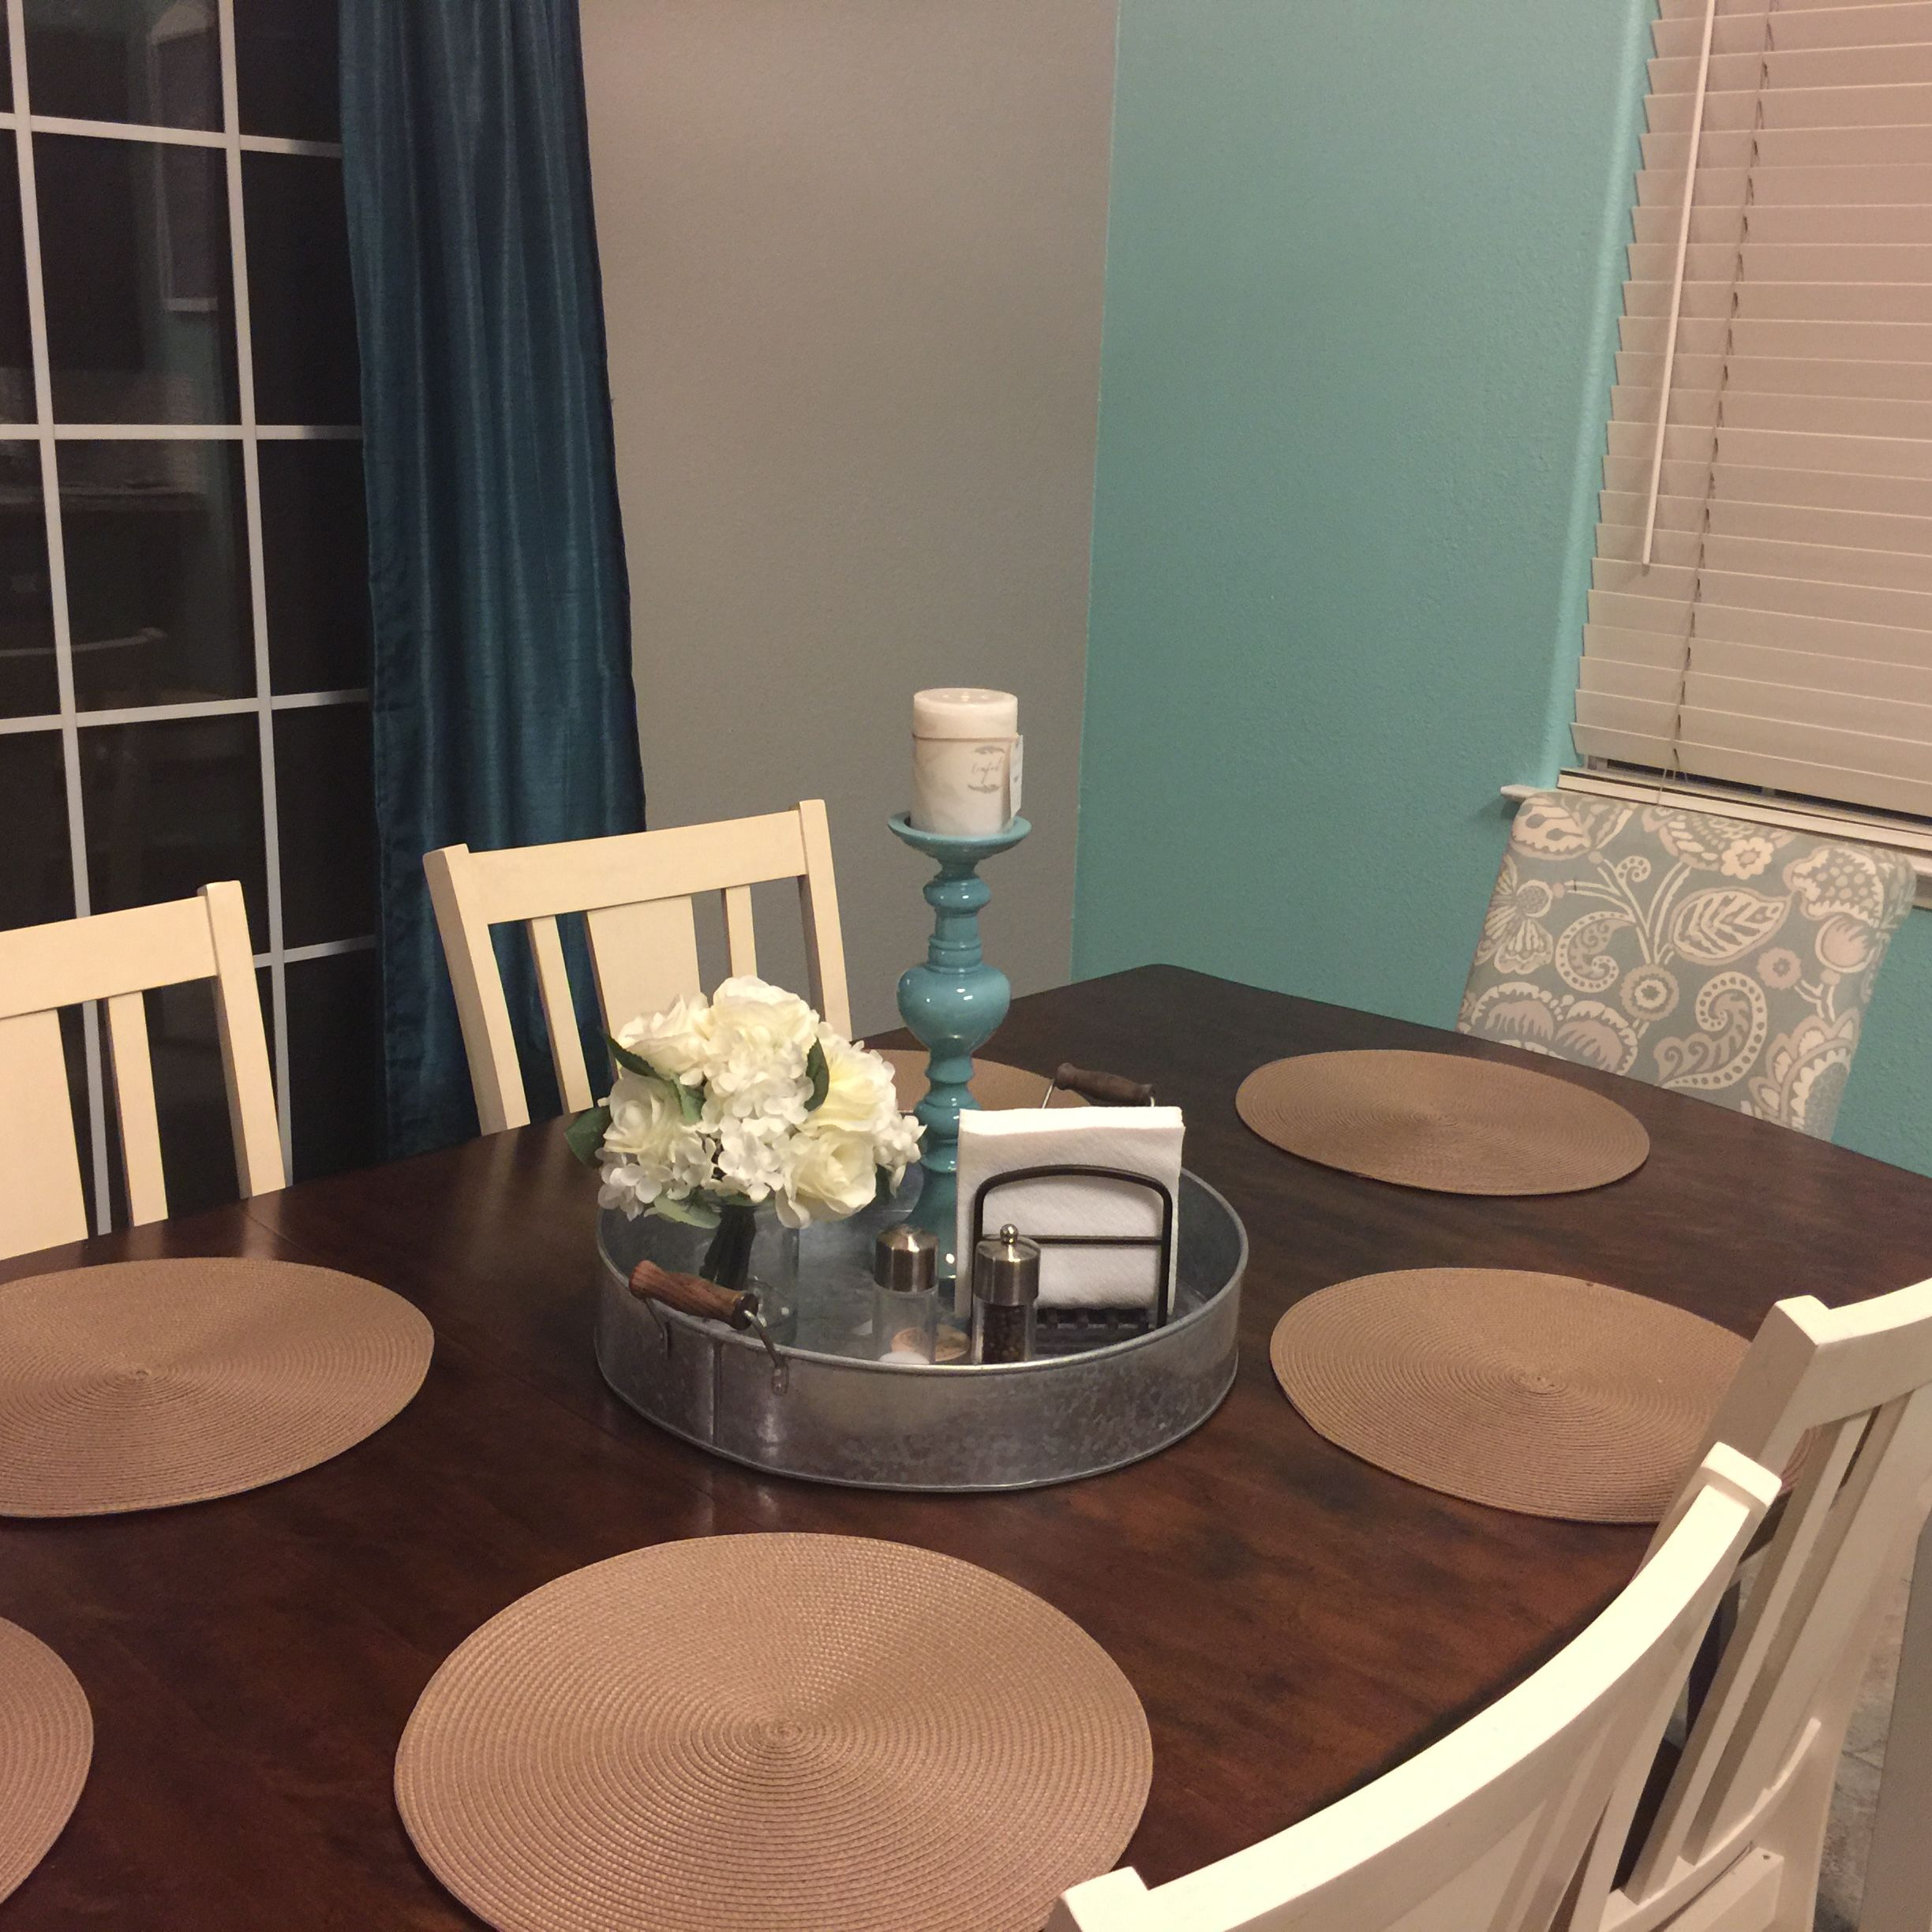 I Have A Two Year Old And Eating Dinner At The Table Is A Daily Ritual That I Love To Do W Kitchen Table Decor Dining Room Table Centerpieces Dining Room